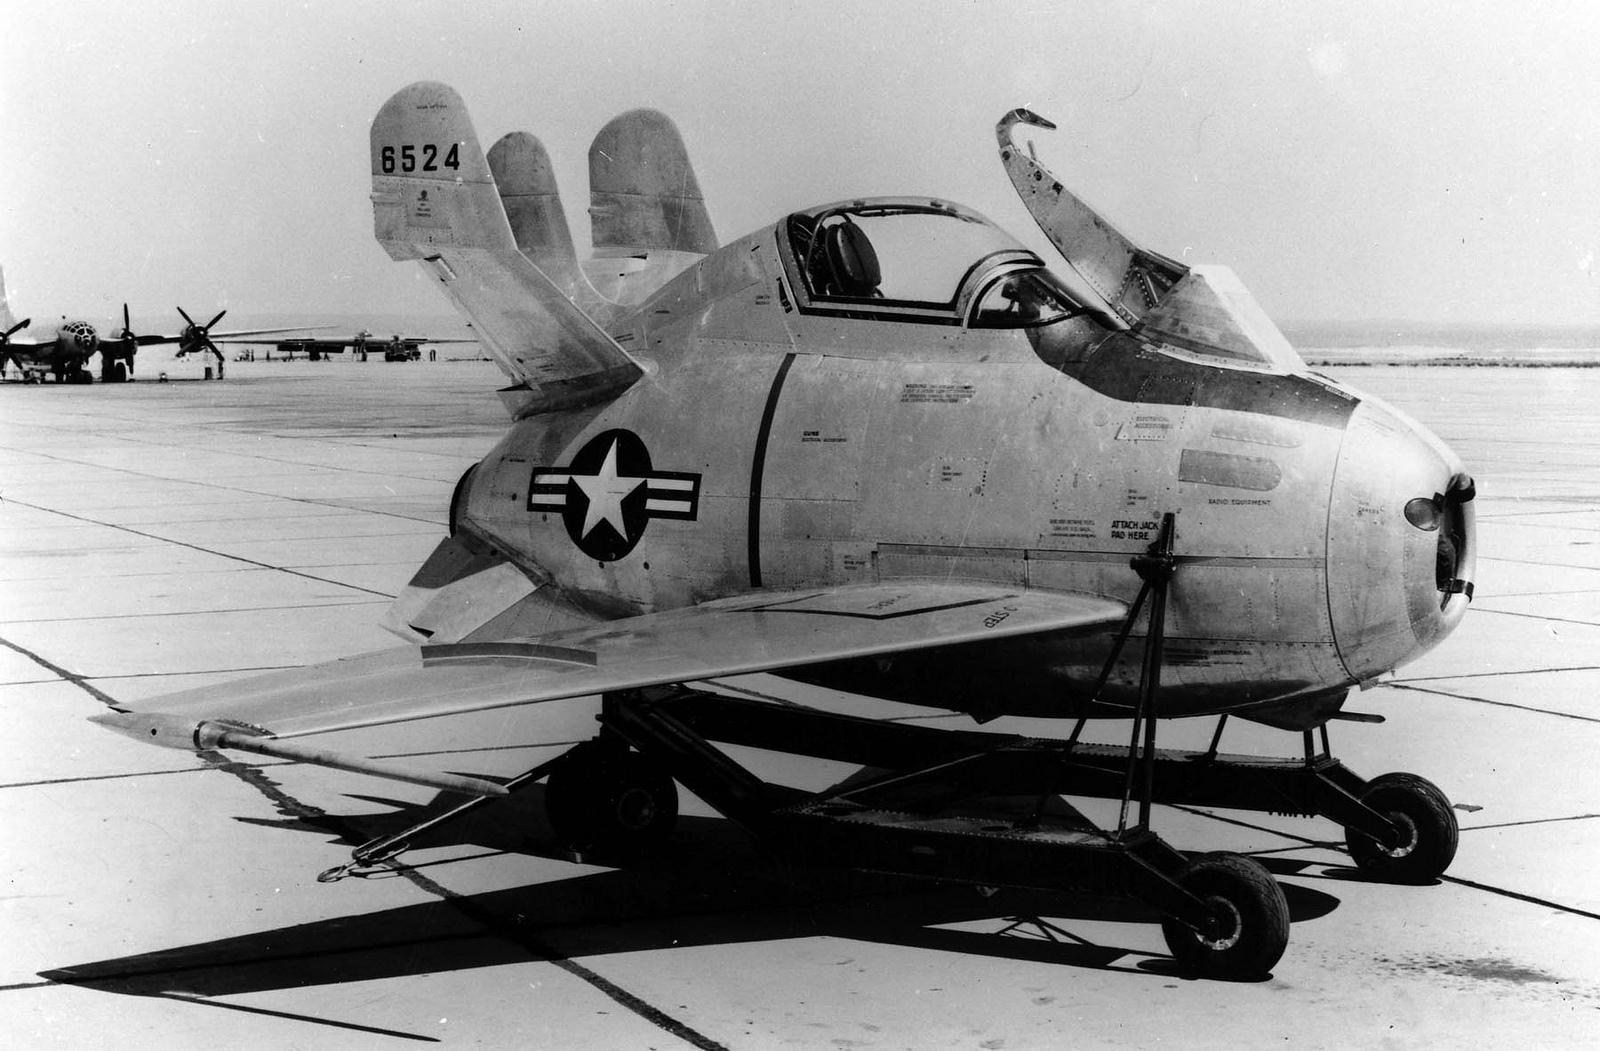 McDonnell XF-85 Goblin | Flickr - Photo Sharing!